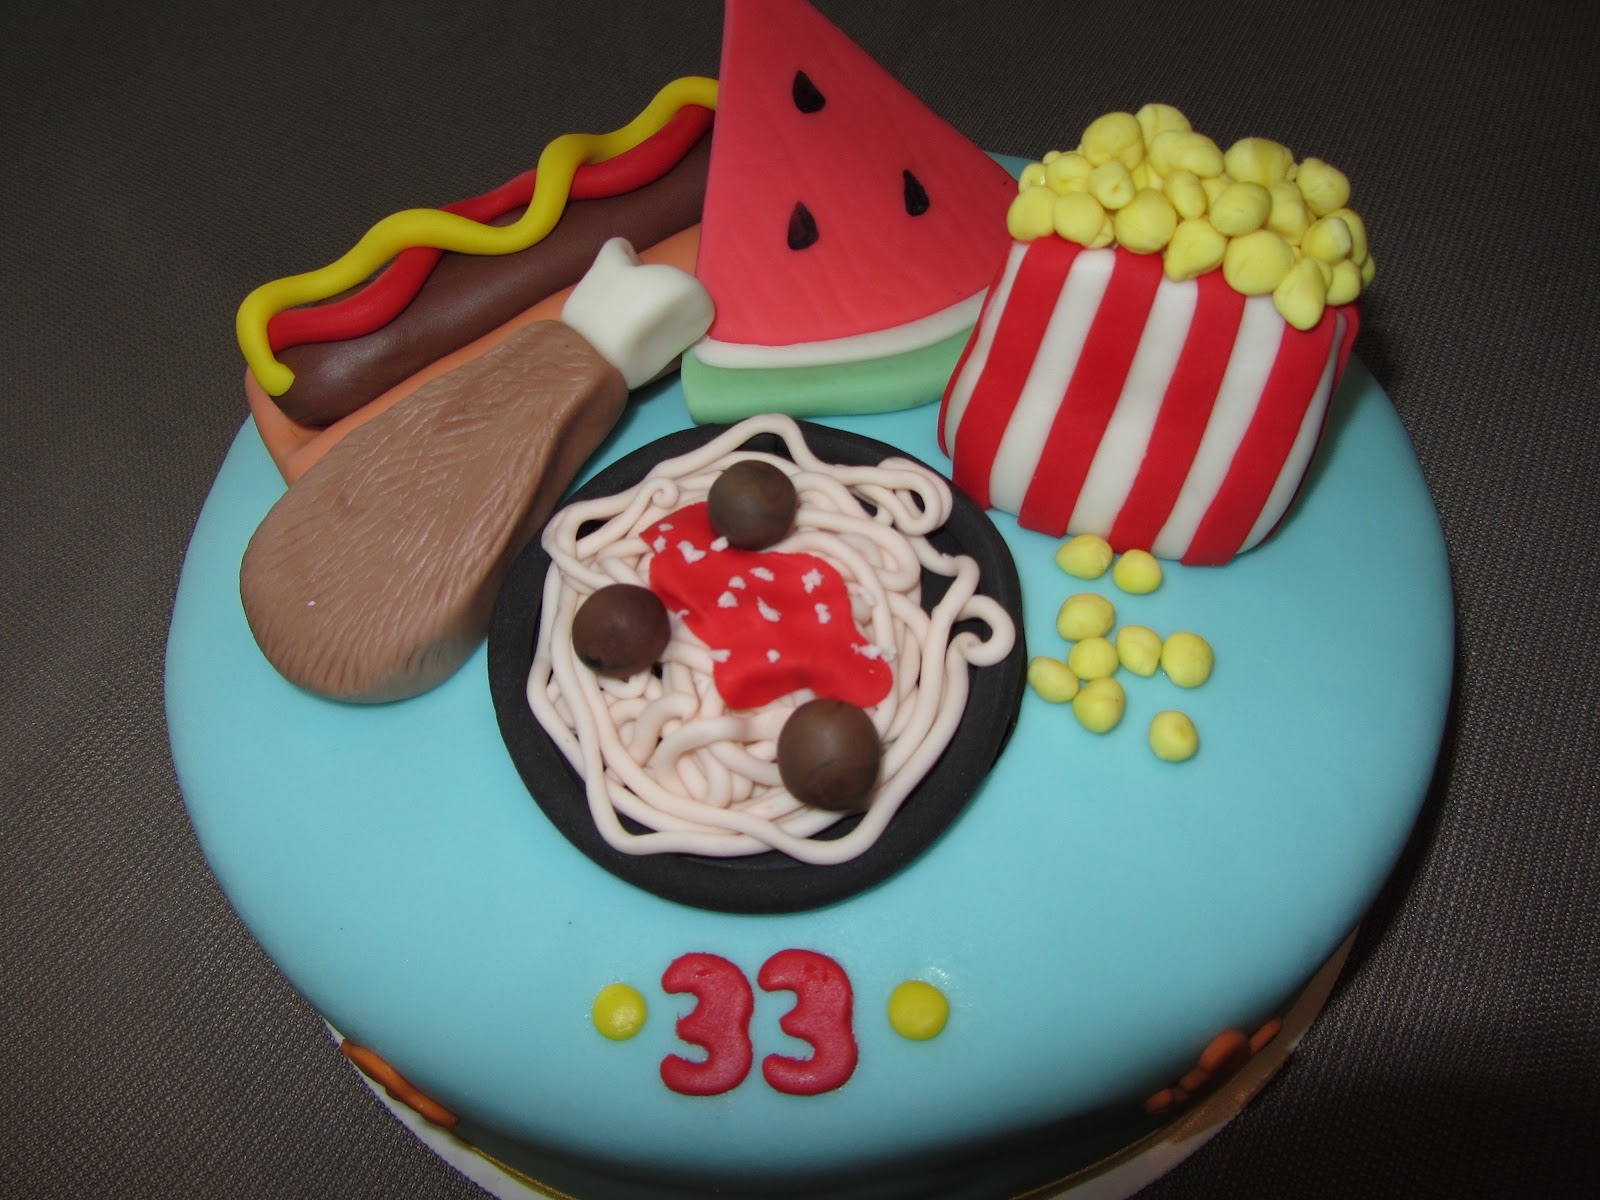 Favorite Foods 33rd Birthday Cake